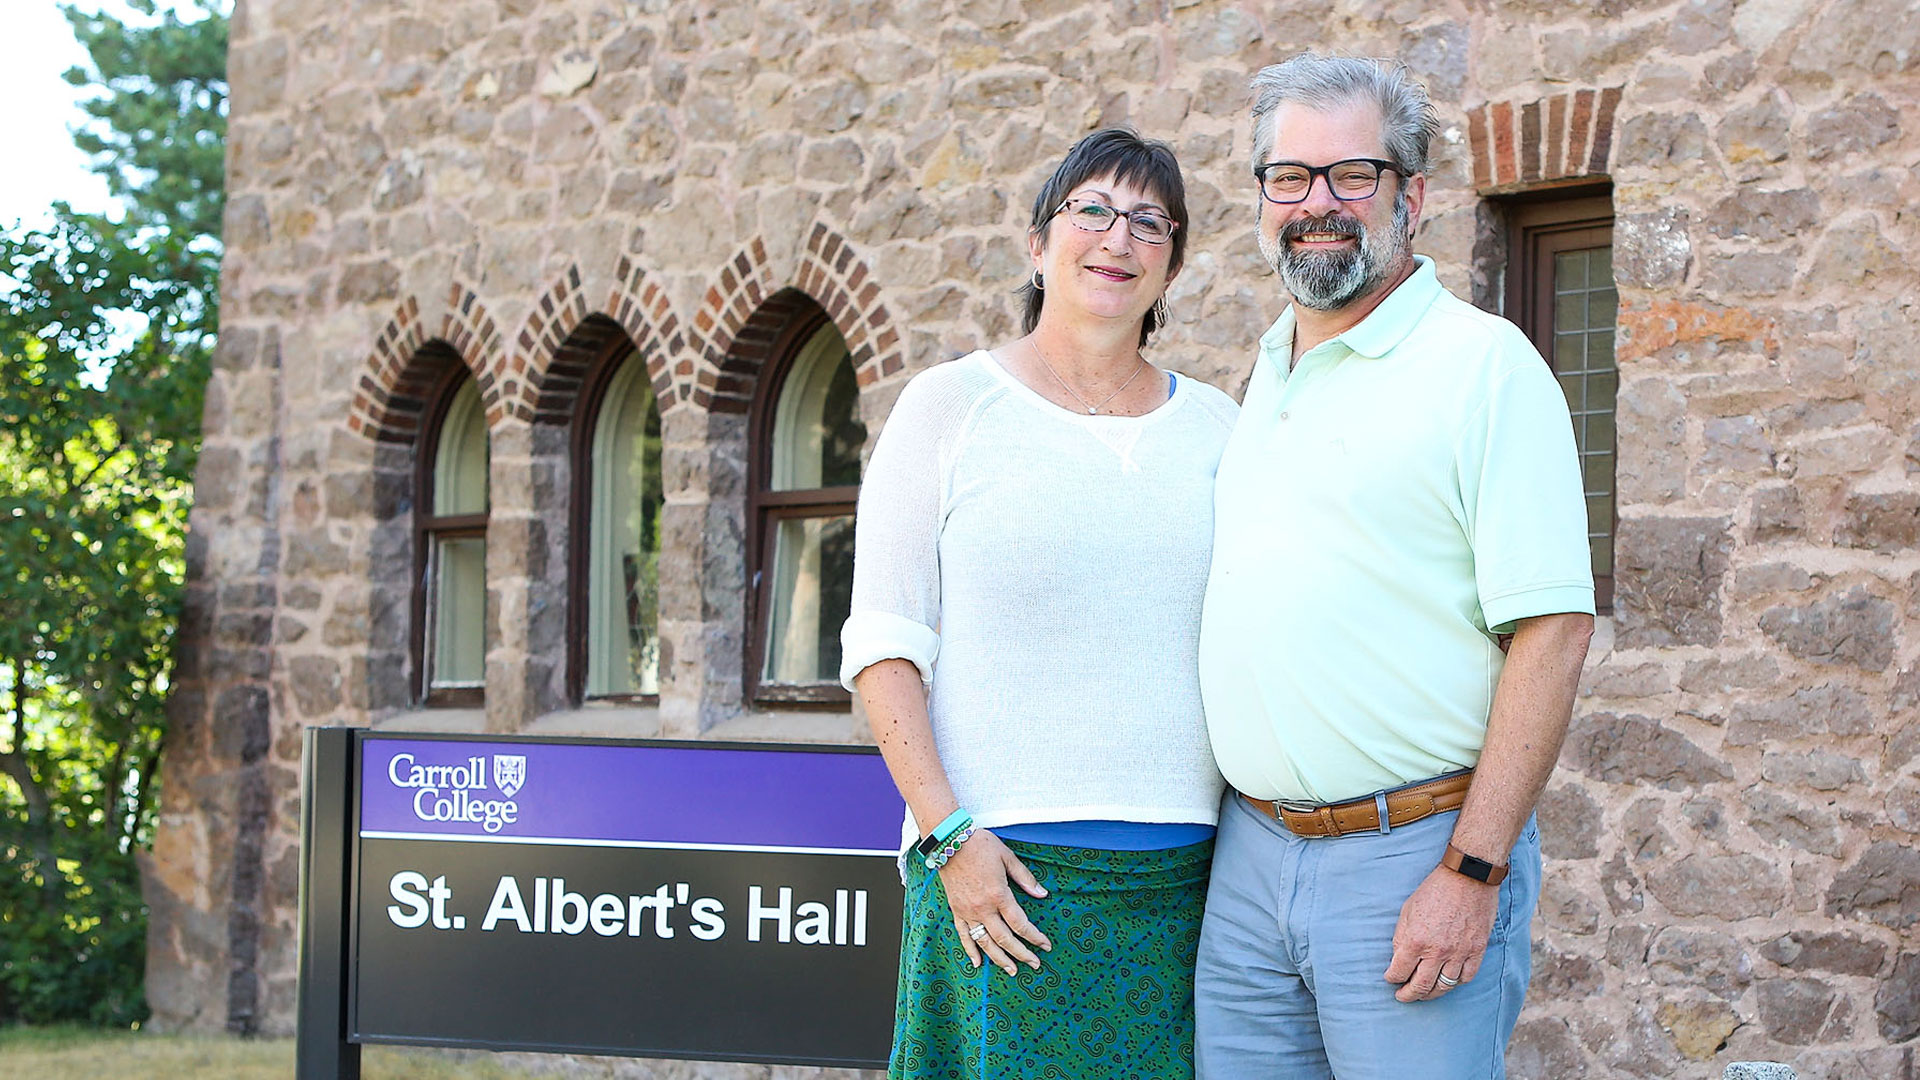 Photo of Susan Raunig and Greg Roeben on Campus